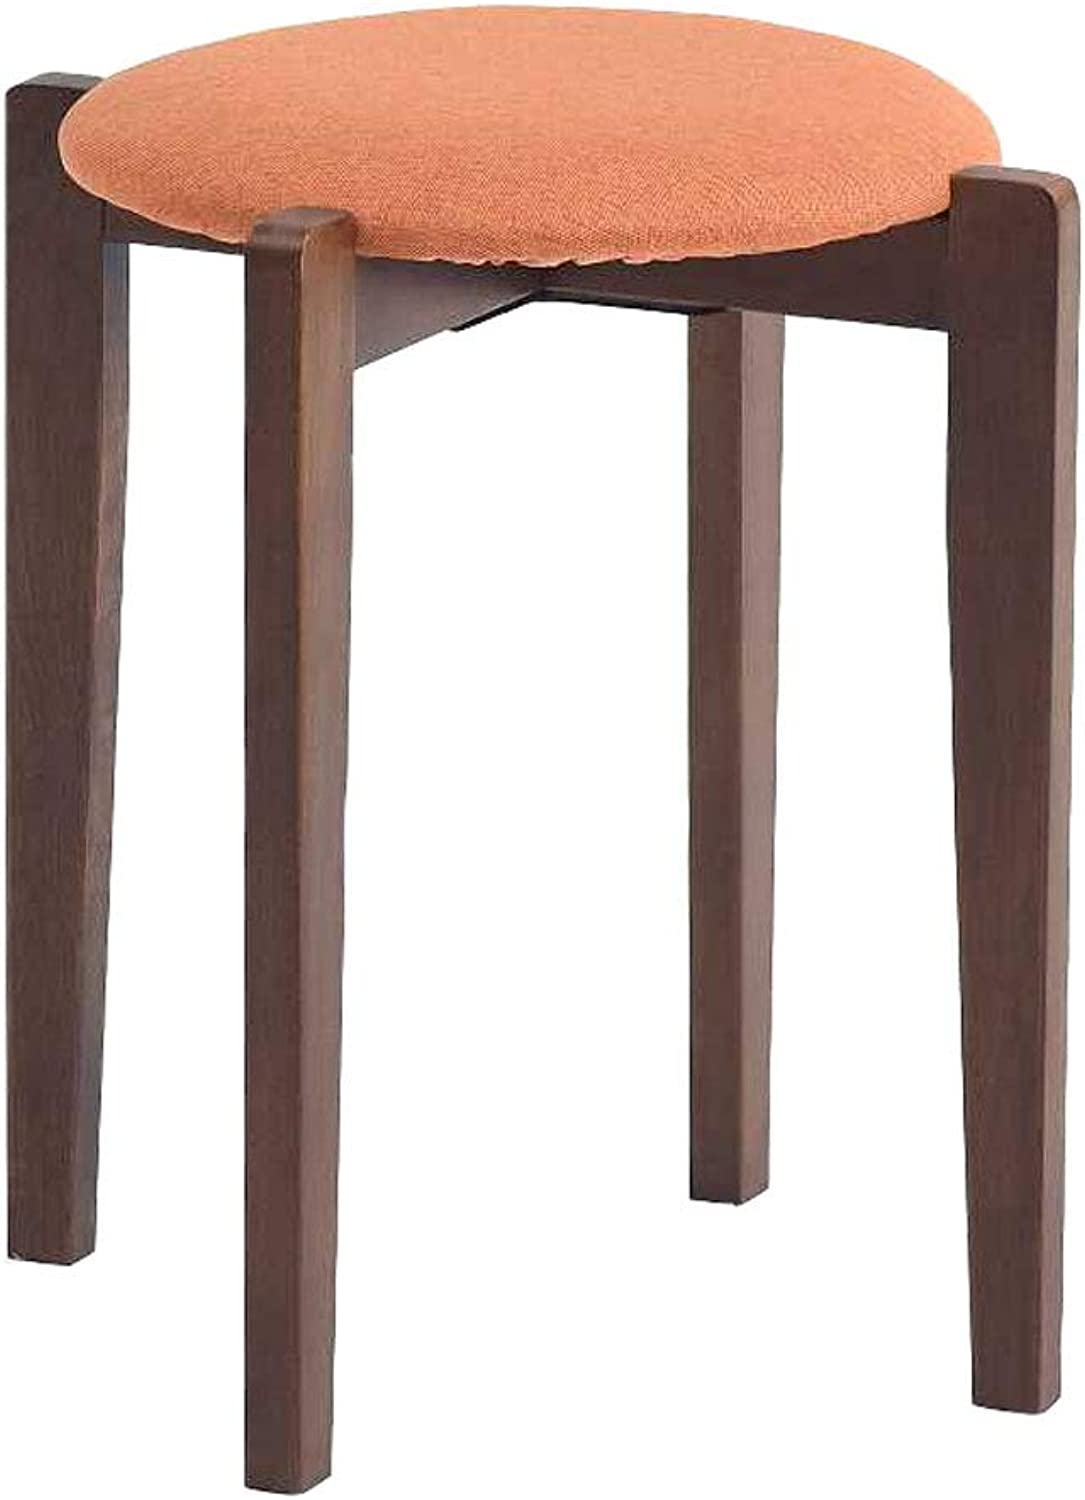 Solid Wood Stool, Modern Simple Makeup Fabric Sofa Stool Round Dresser Dining Table Home Brown Small Bench (color   orange)